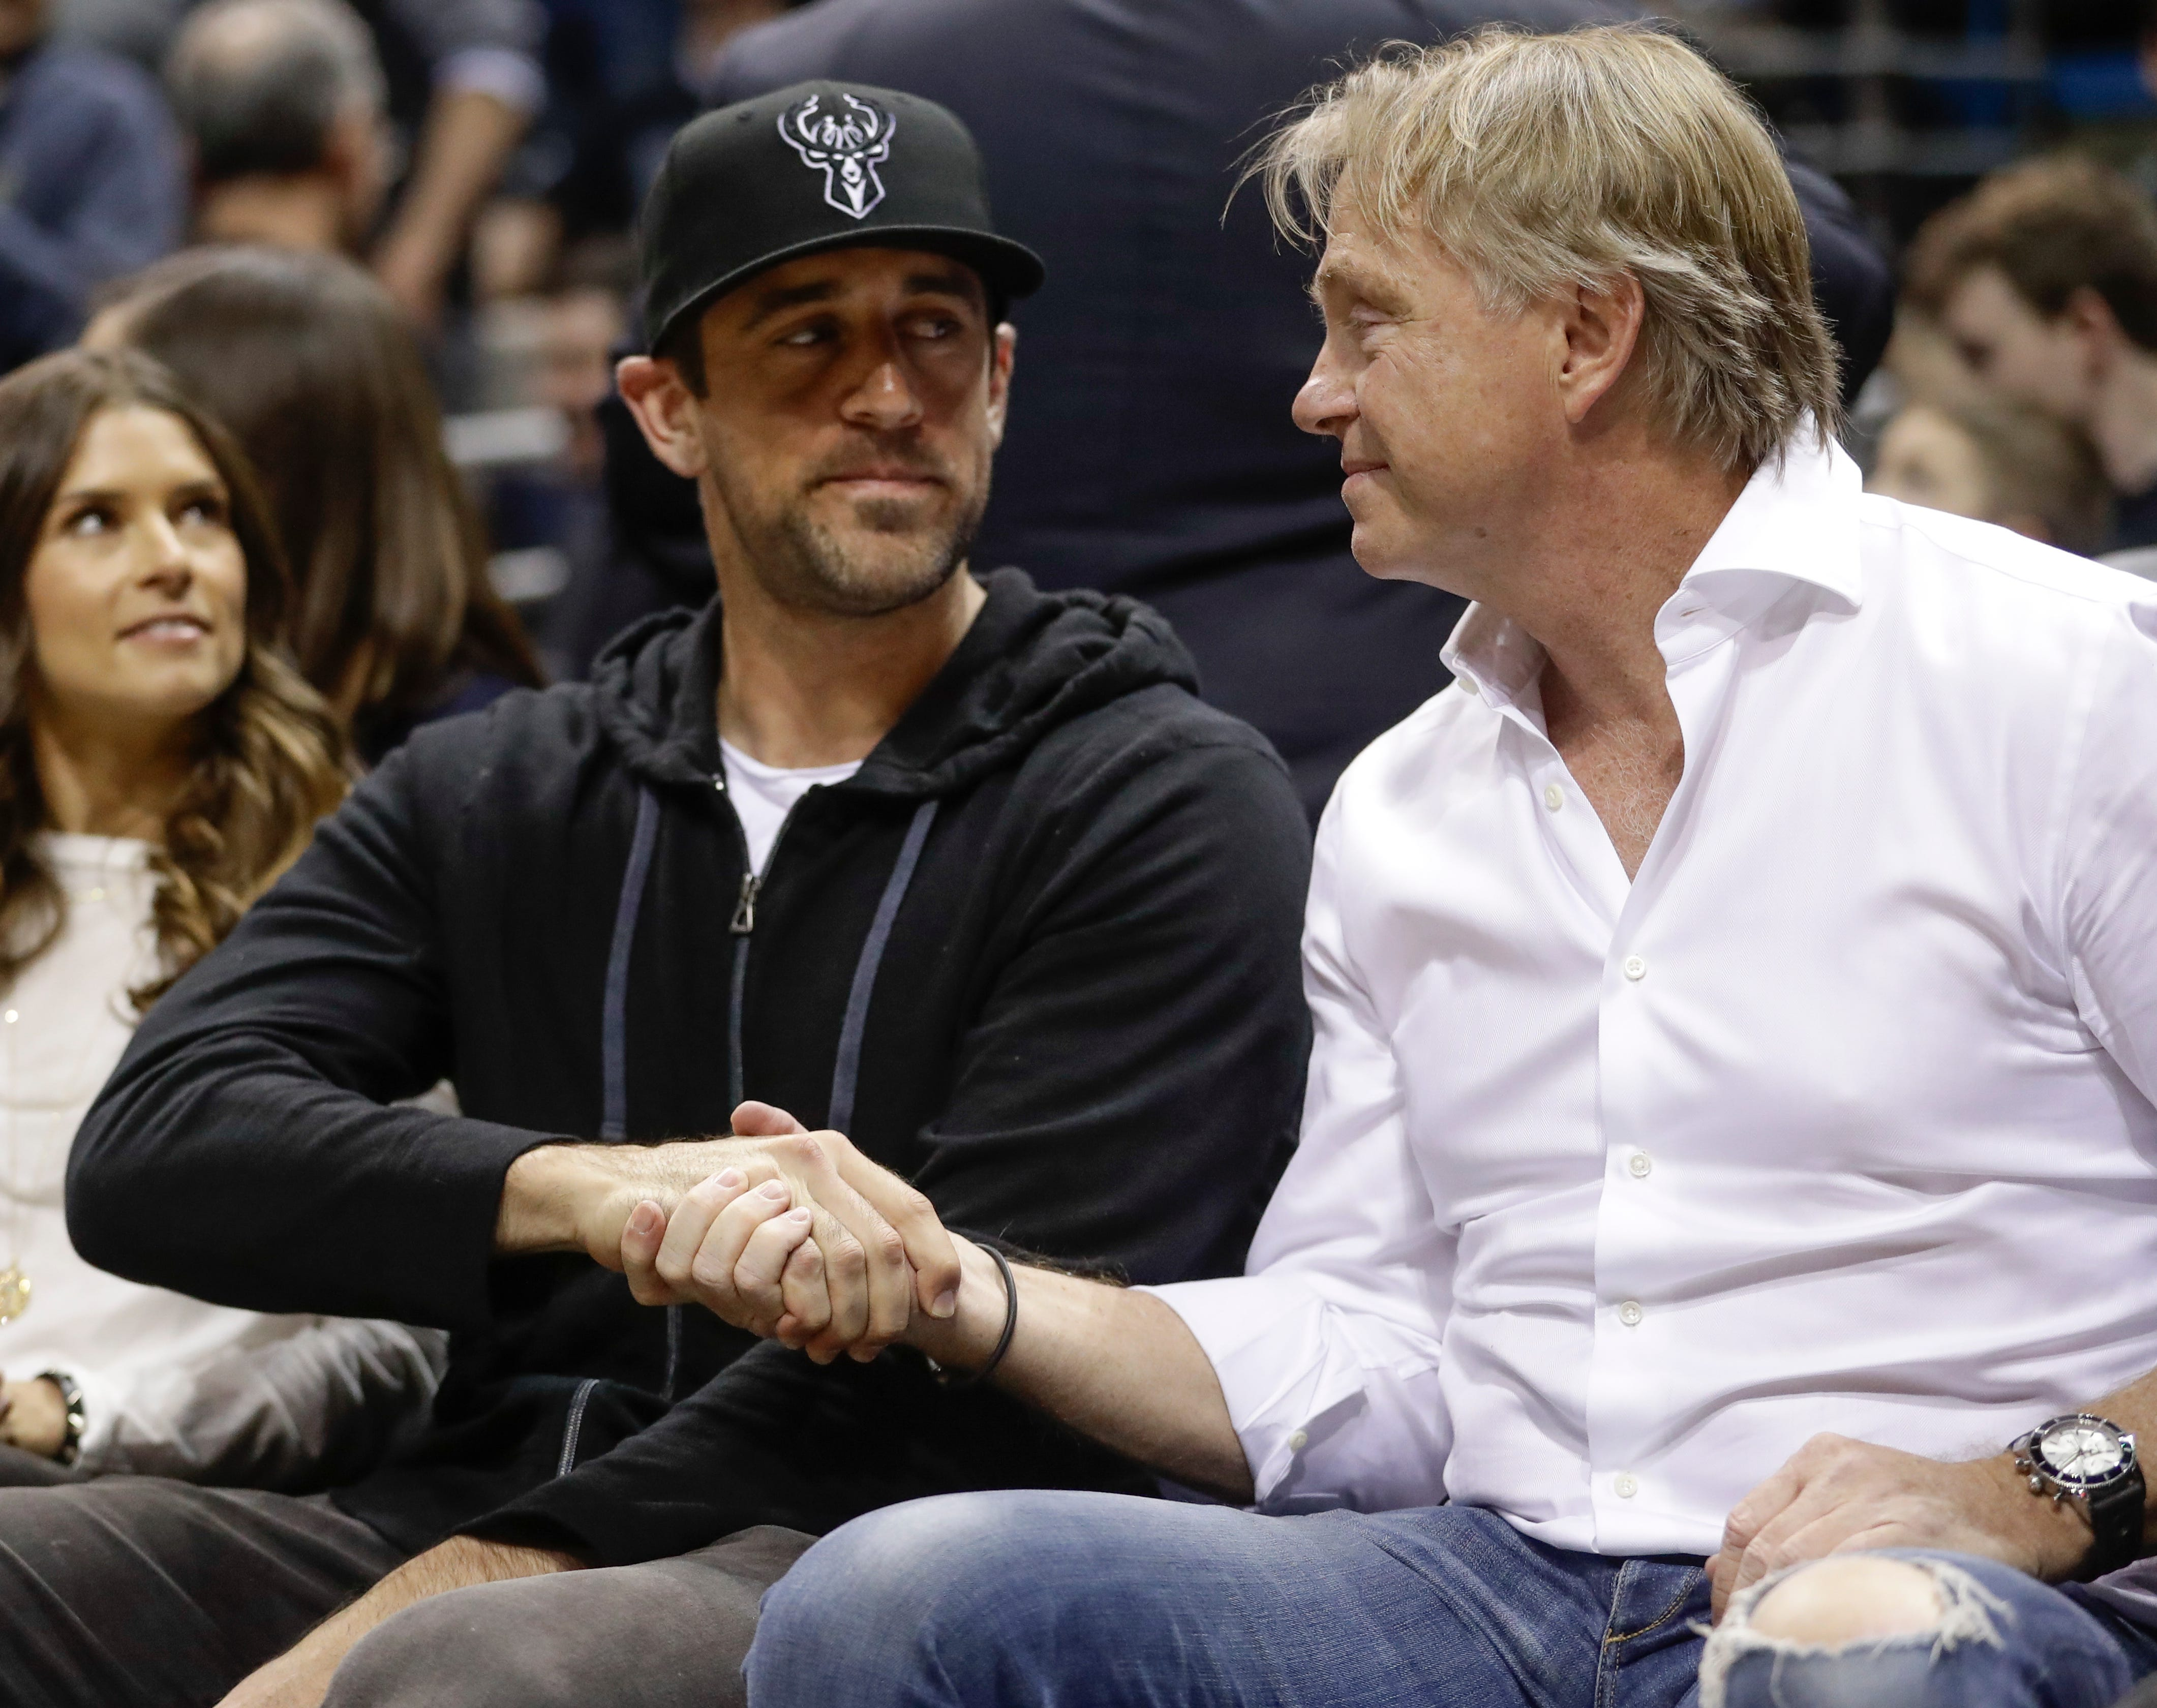 Aaron Rodgers takes jab at ESPN's Paul Pierce on Twitter after Bucks' Game 4 victory